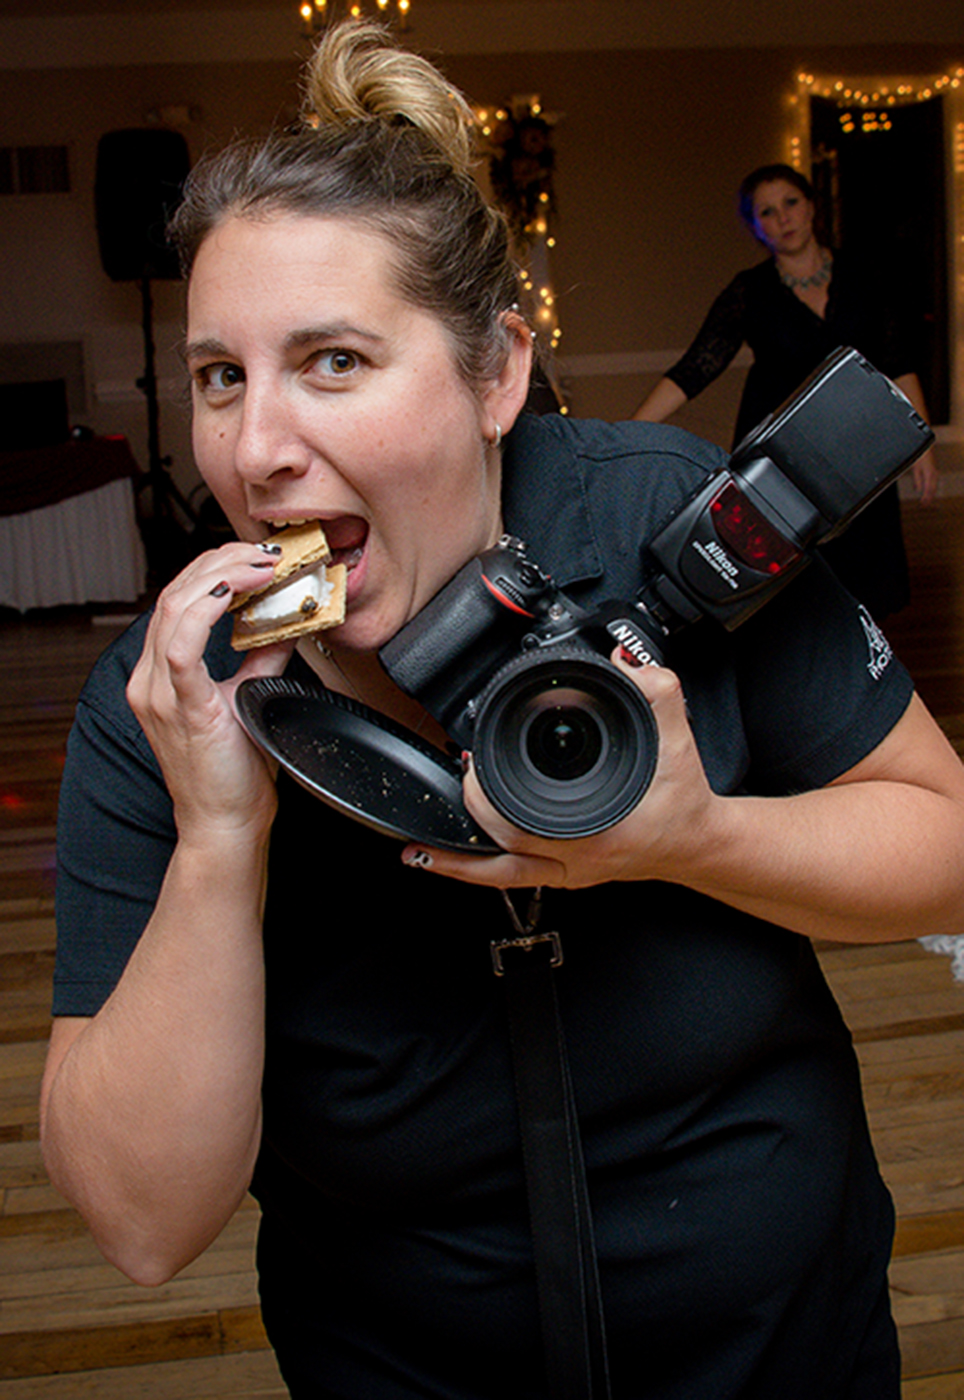 All Occasions Photography Albany NY - Wedding Photography Vanessa Eating Smore